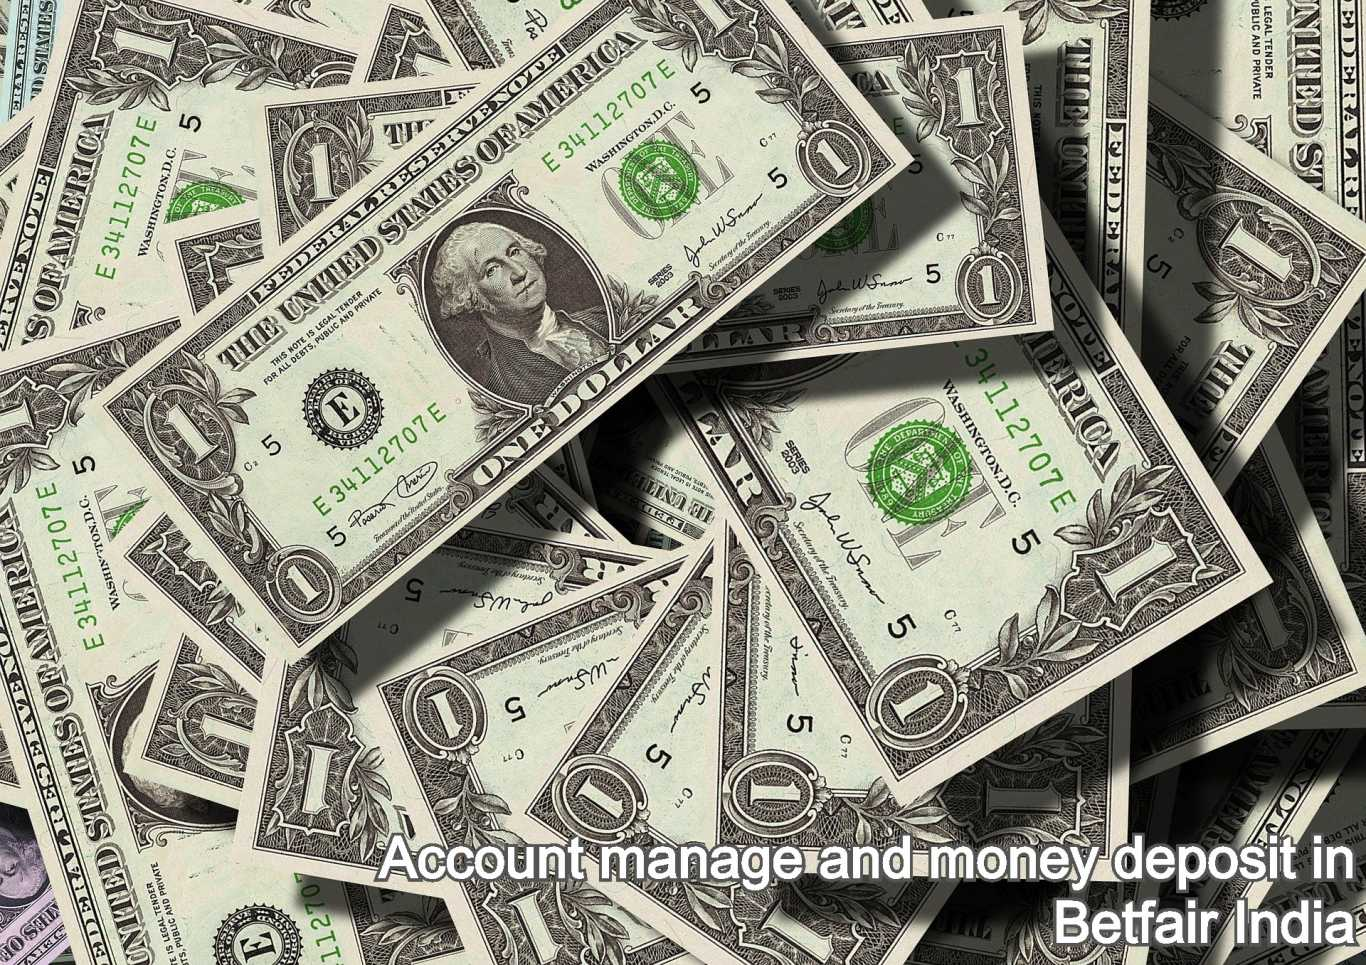 Account manage and money deposit in Betfair India